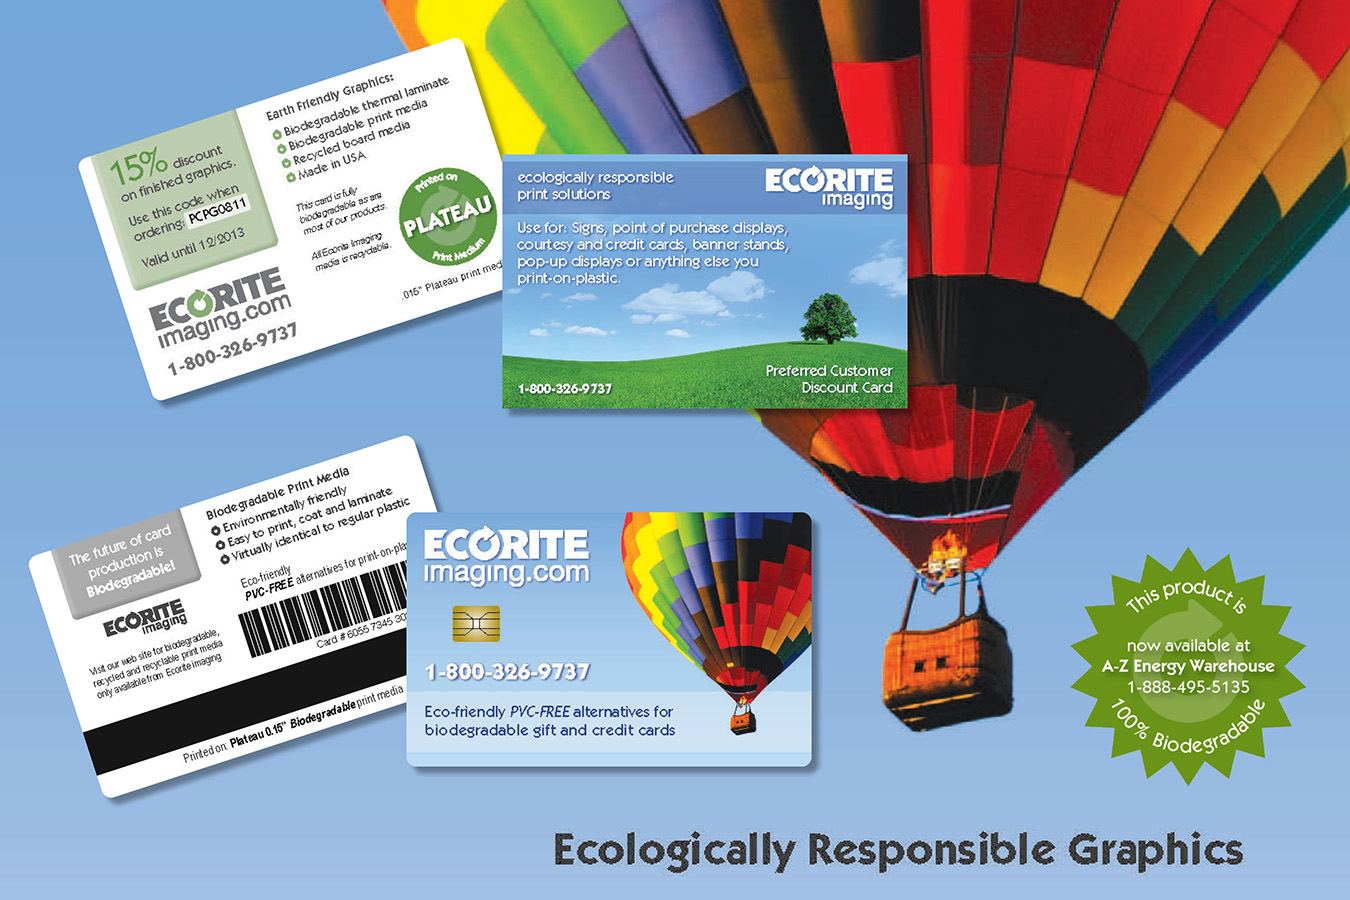 Ecorite Samps : Ecorite biodegradable plastic print samples with discount for use on graphic production